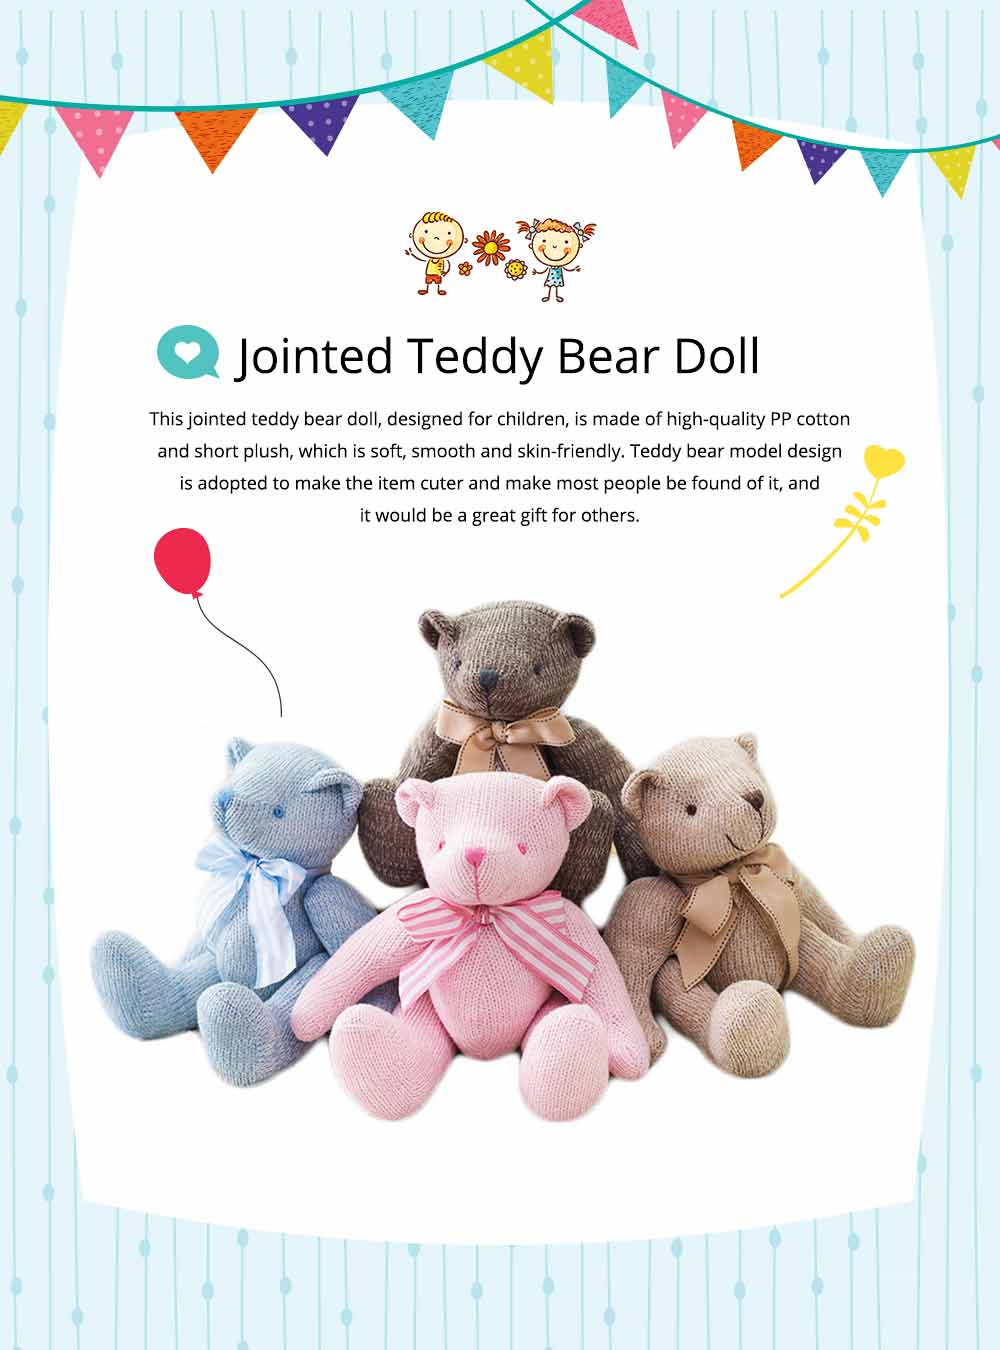 Cute Jointed Teddy Bear Doll with Bow Decoration, Animal Carton Fluffy Toy Birthday Present Gift for Children 0